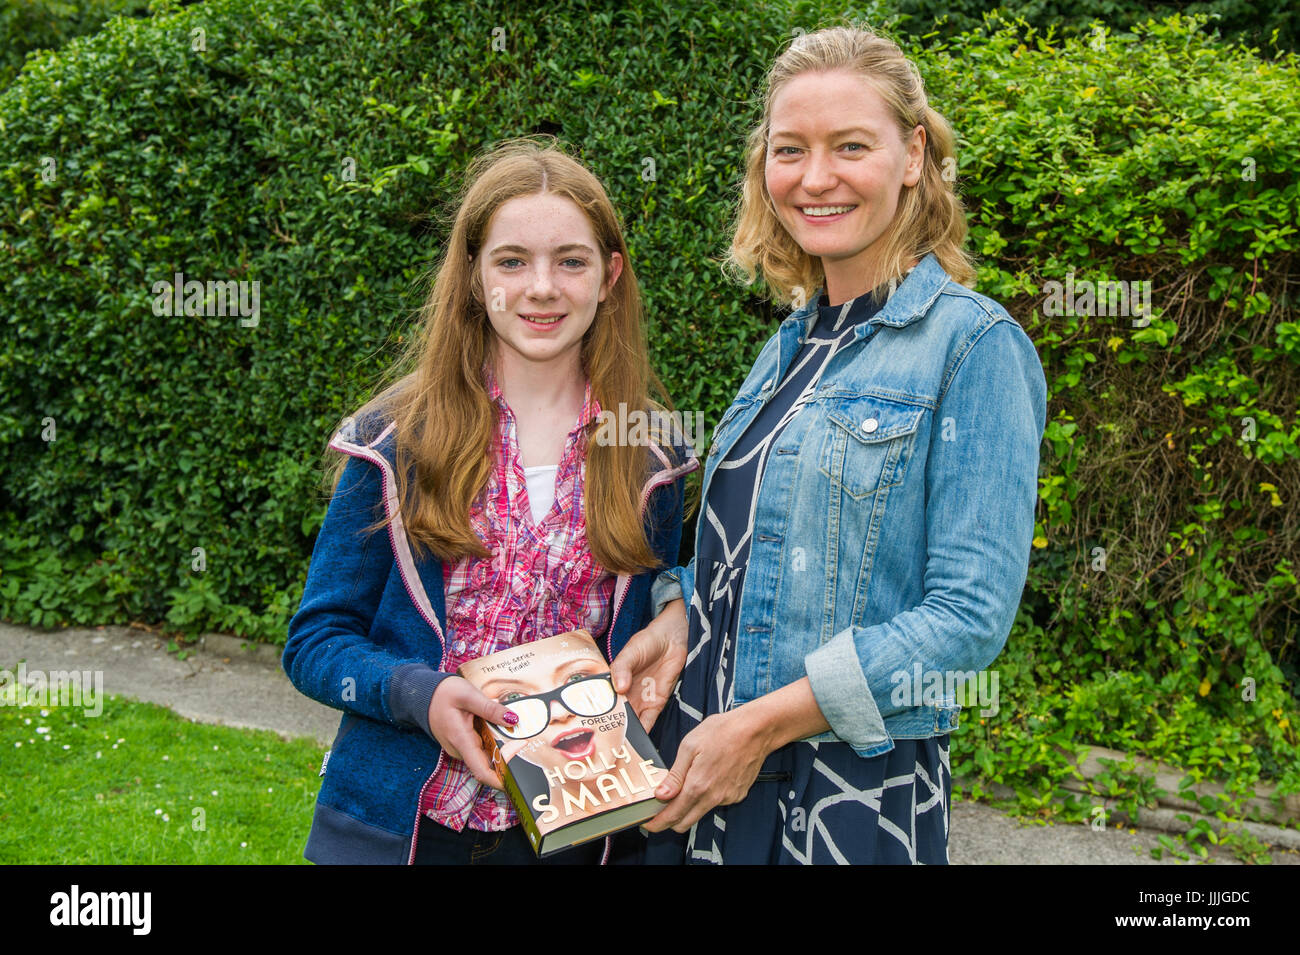 Bantry, West Cork, Ireland. 20th July, 2017.  Award-winning Geek Girl series children's book author, Holly Smale - Stock Image